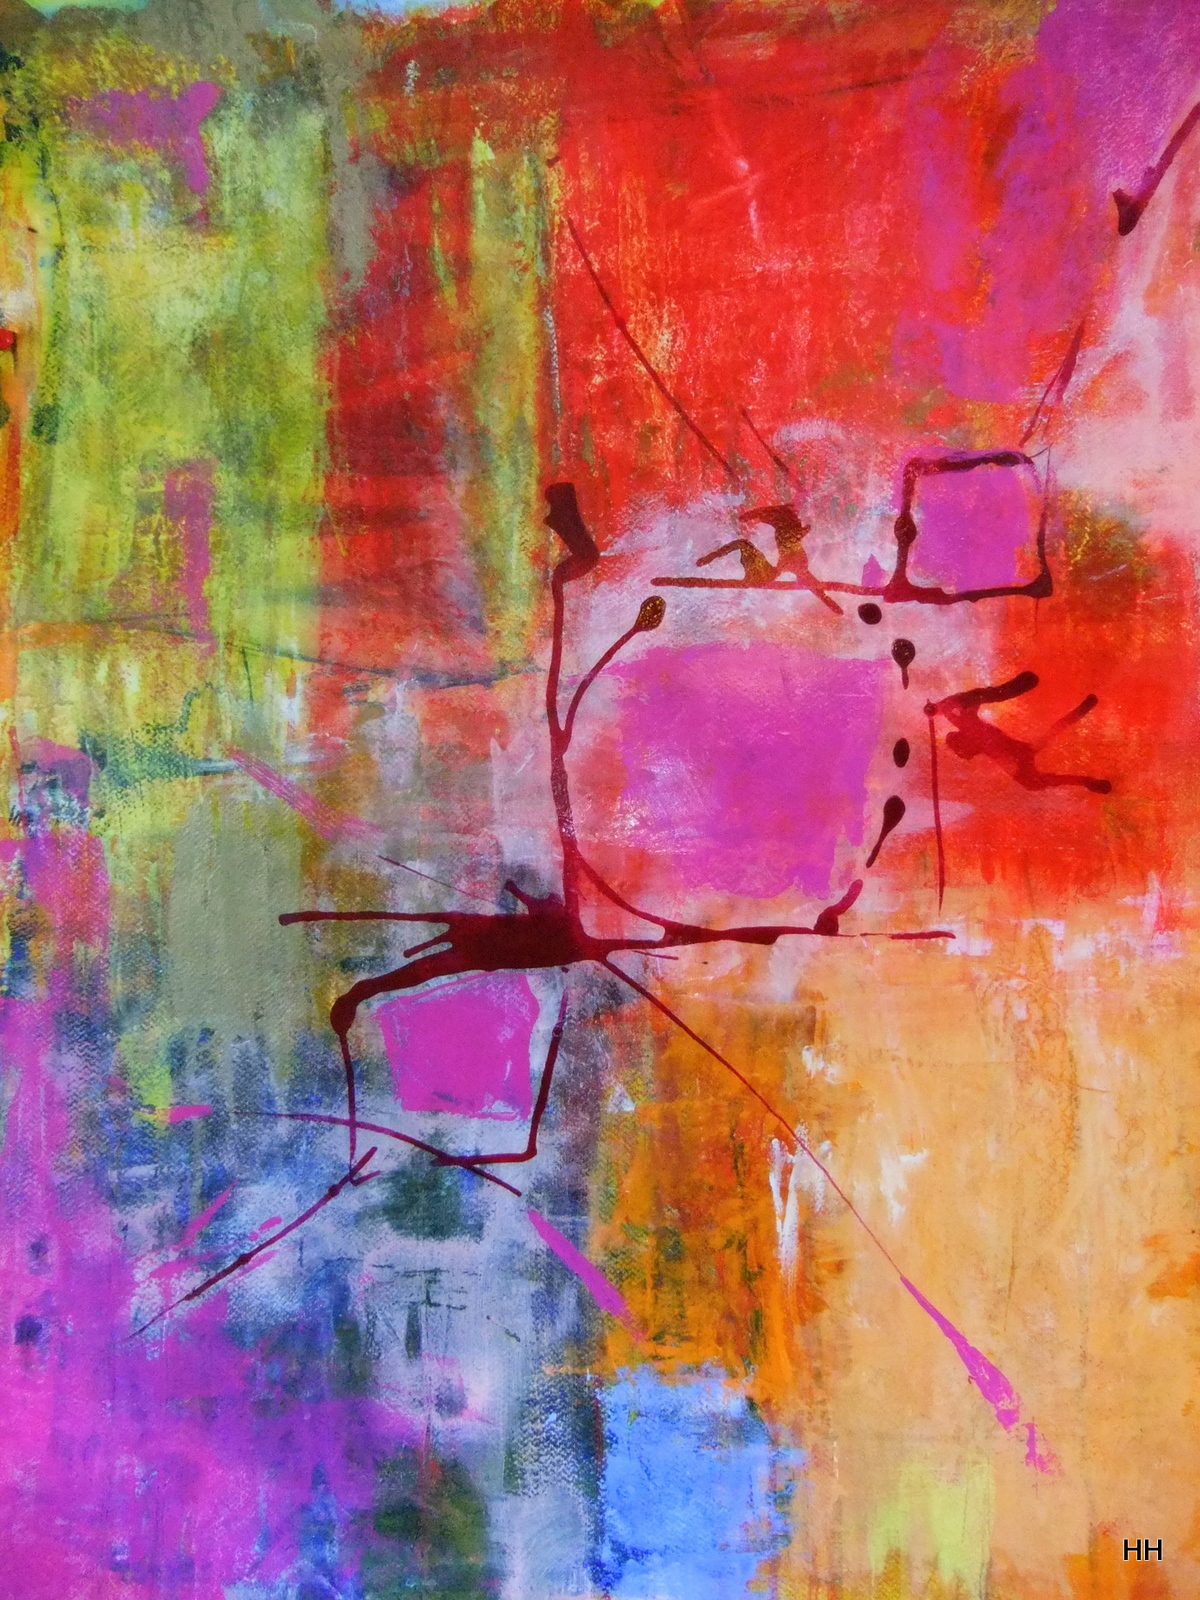 HILLARY HOSTETLER PAINTING: Mixed Media and Collage with